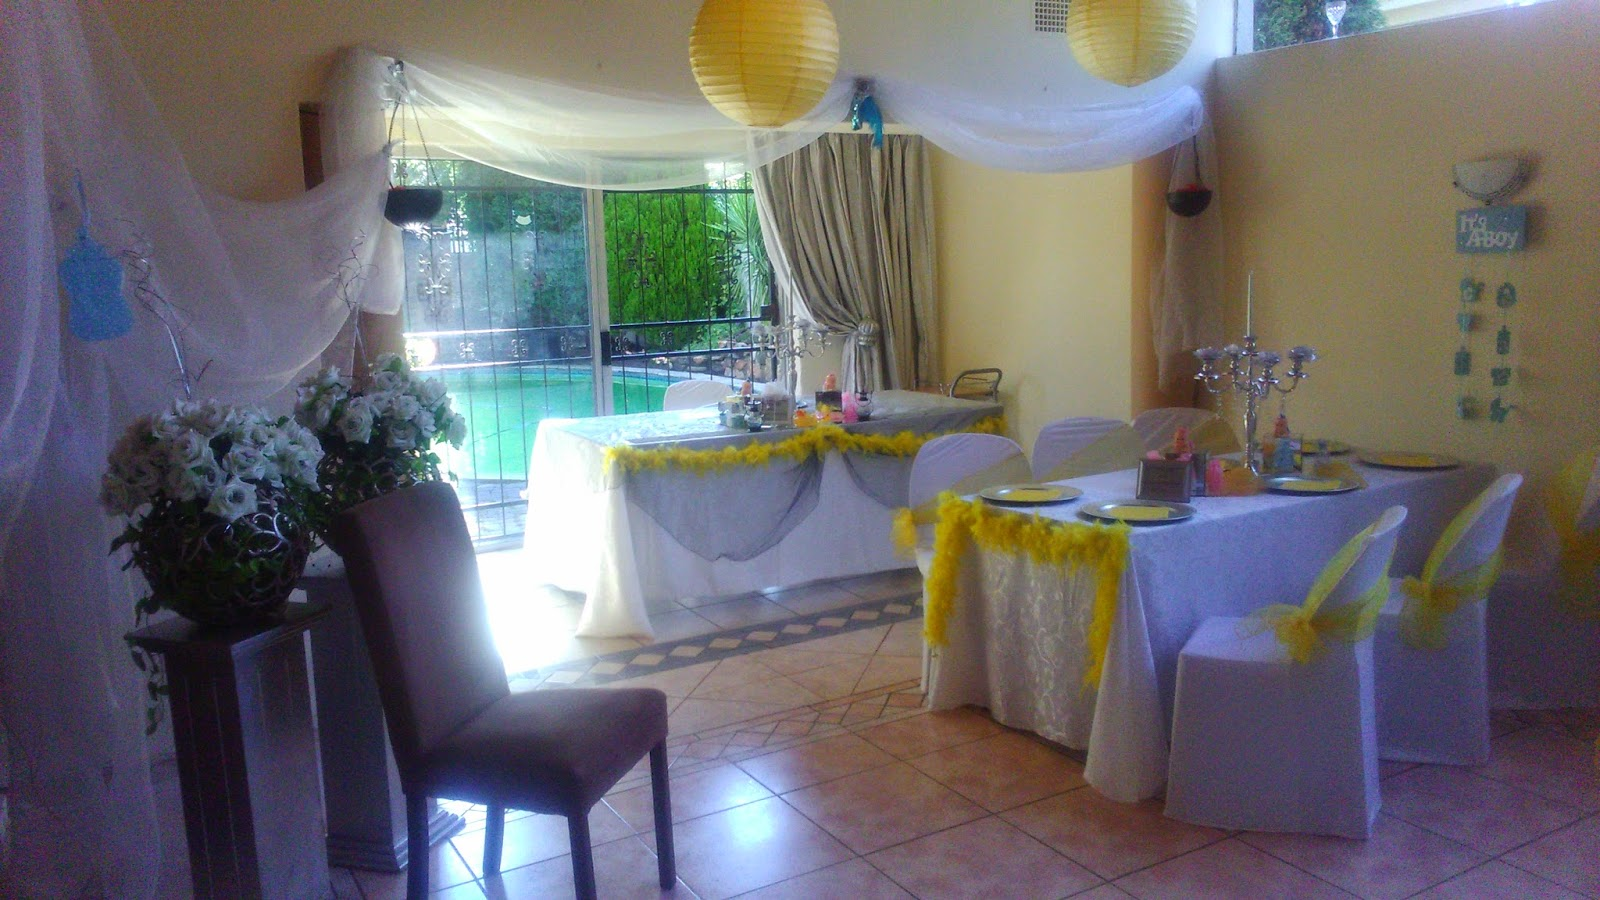 shower venue in johannesburg baby shower venue in johannesburg